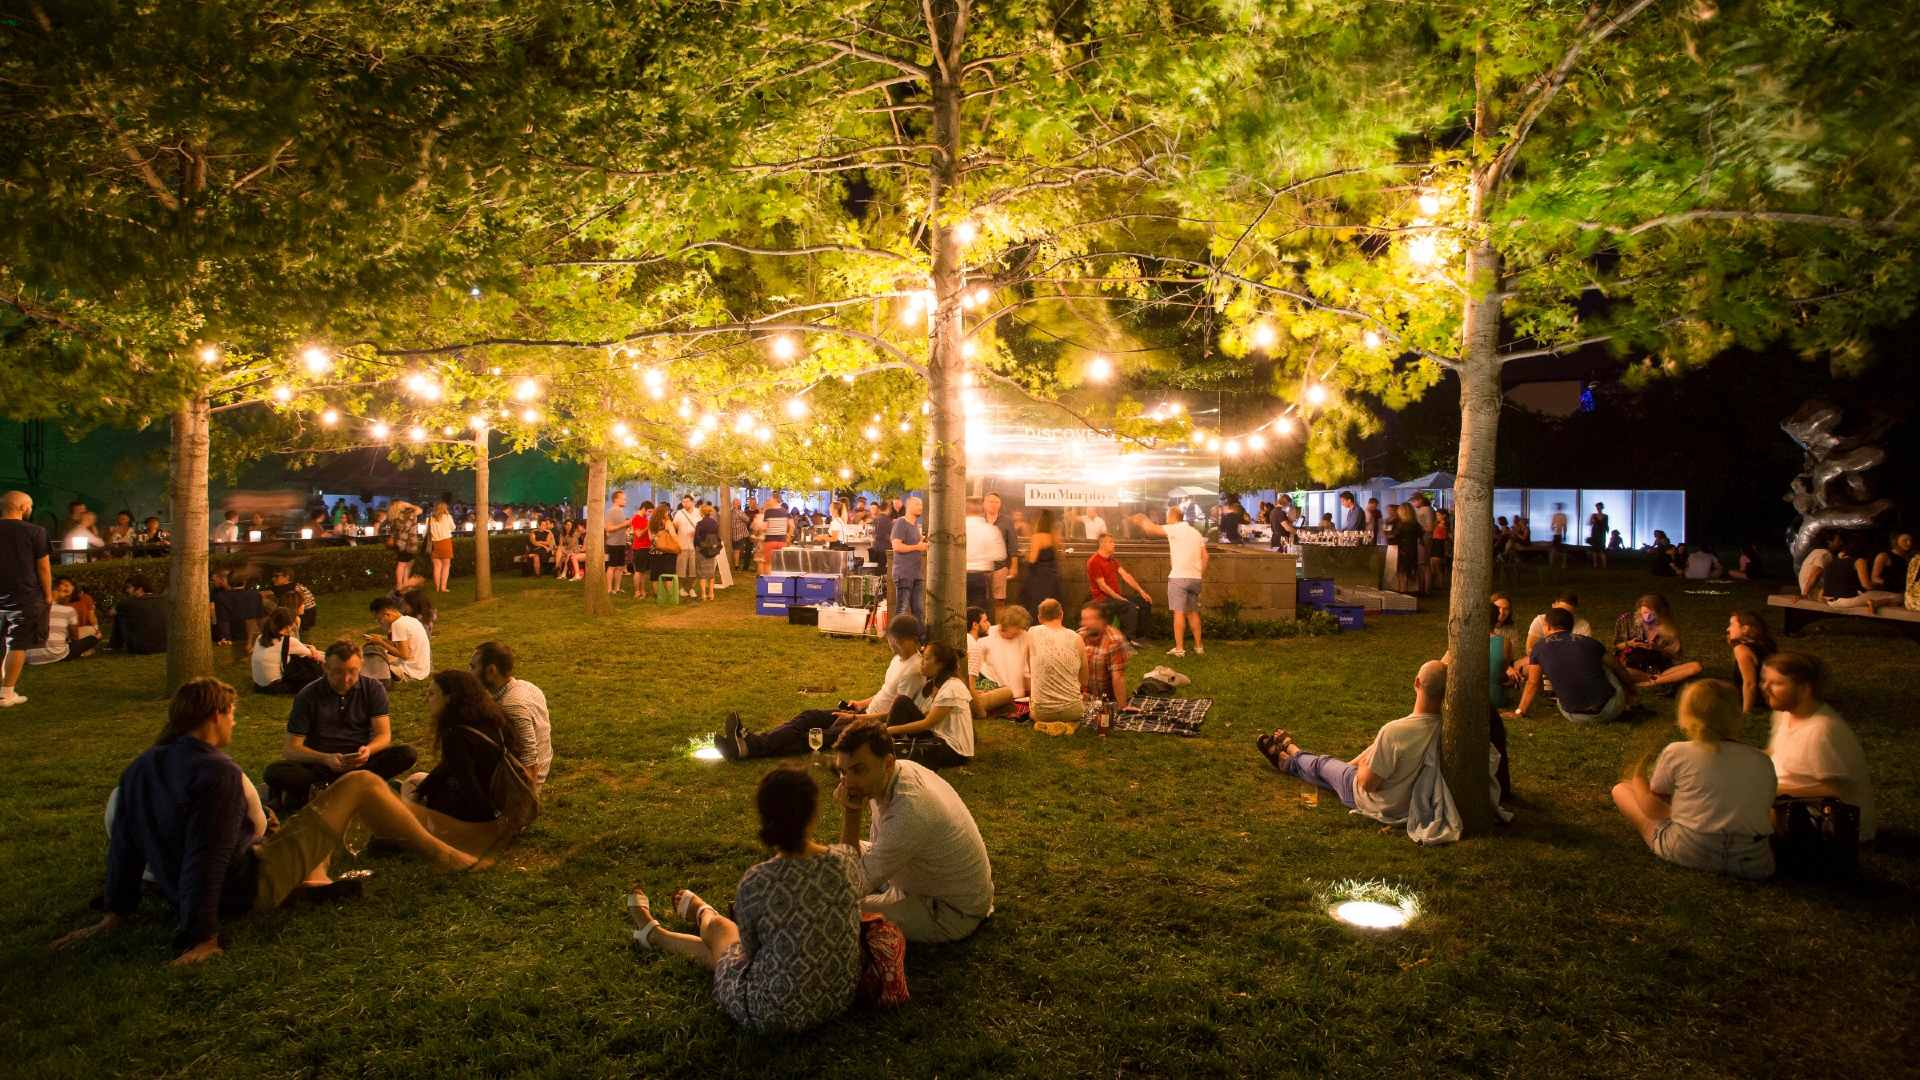 Seven Summertime Events That'll Help You Beat the Back-to-Work Blues